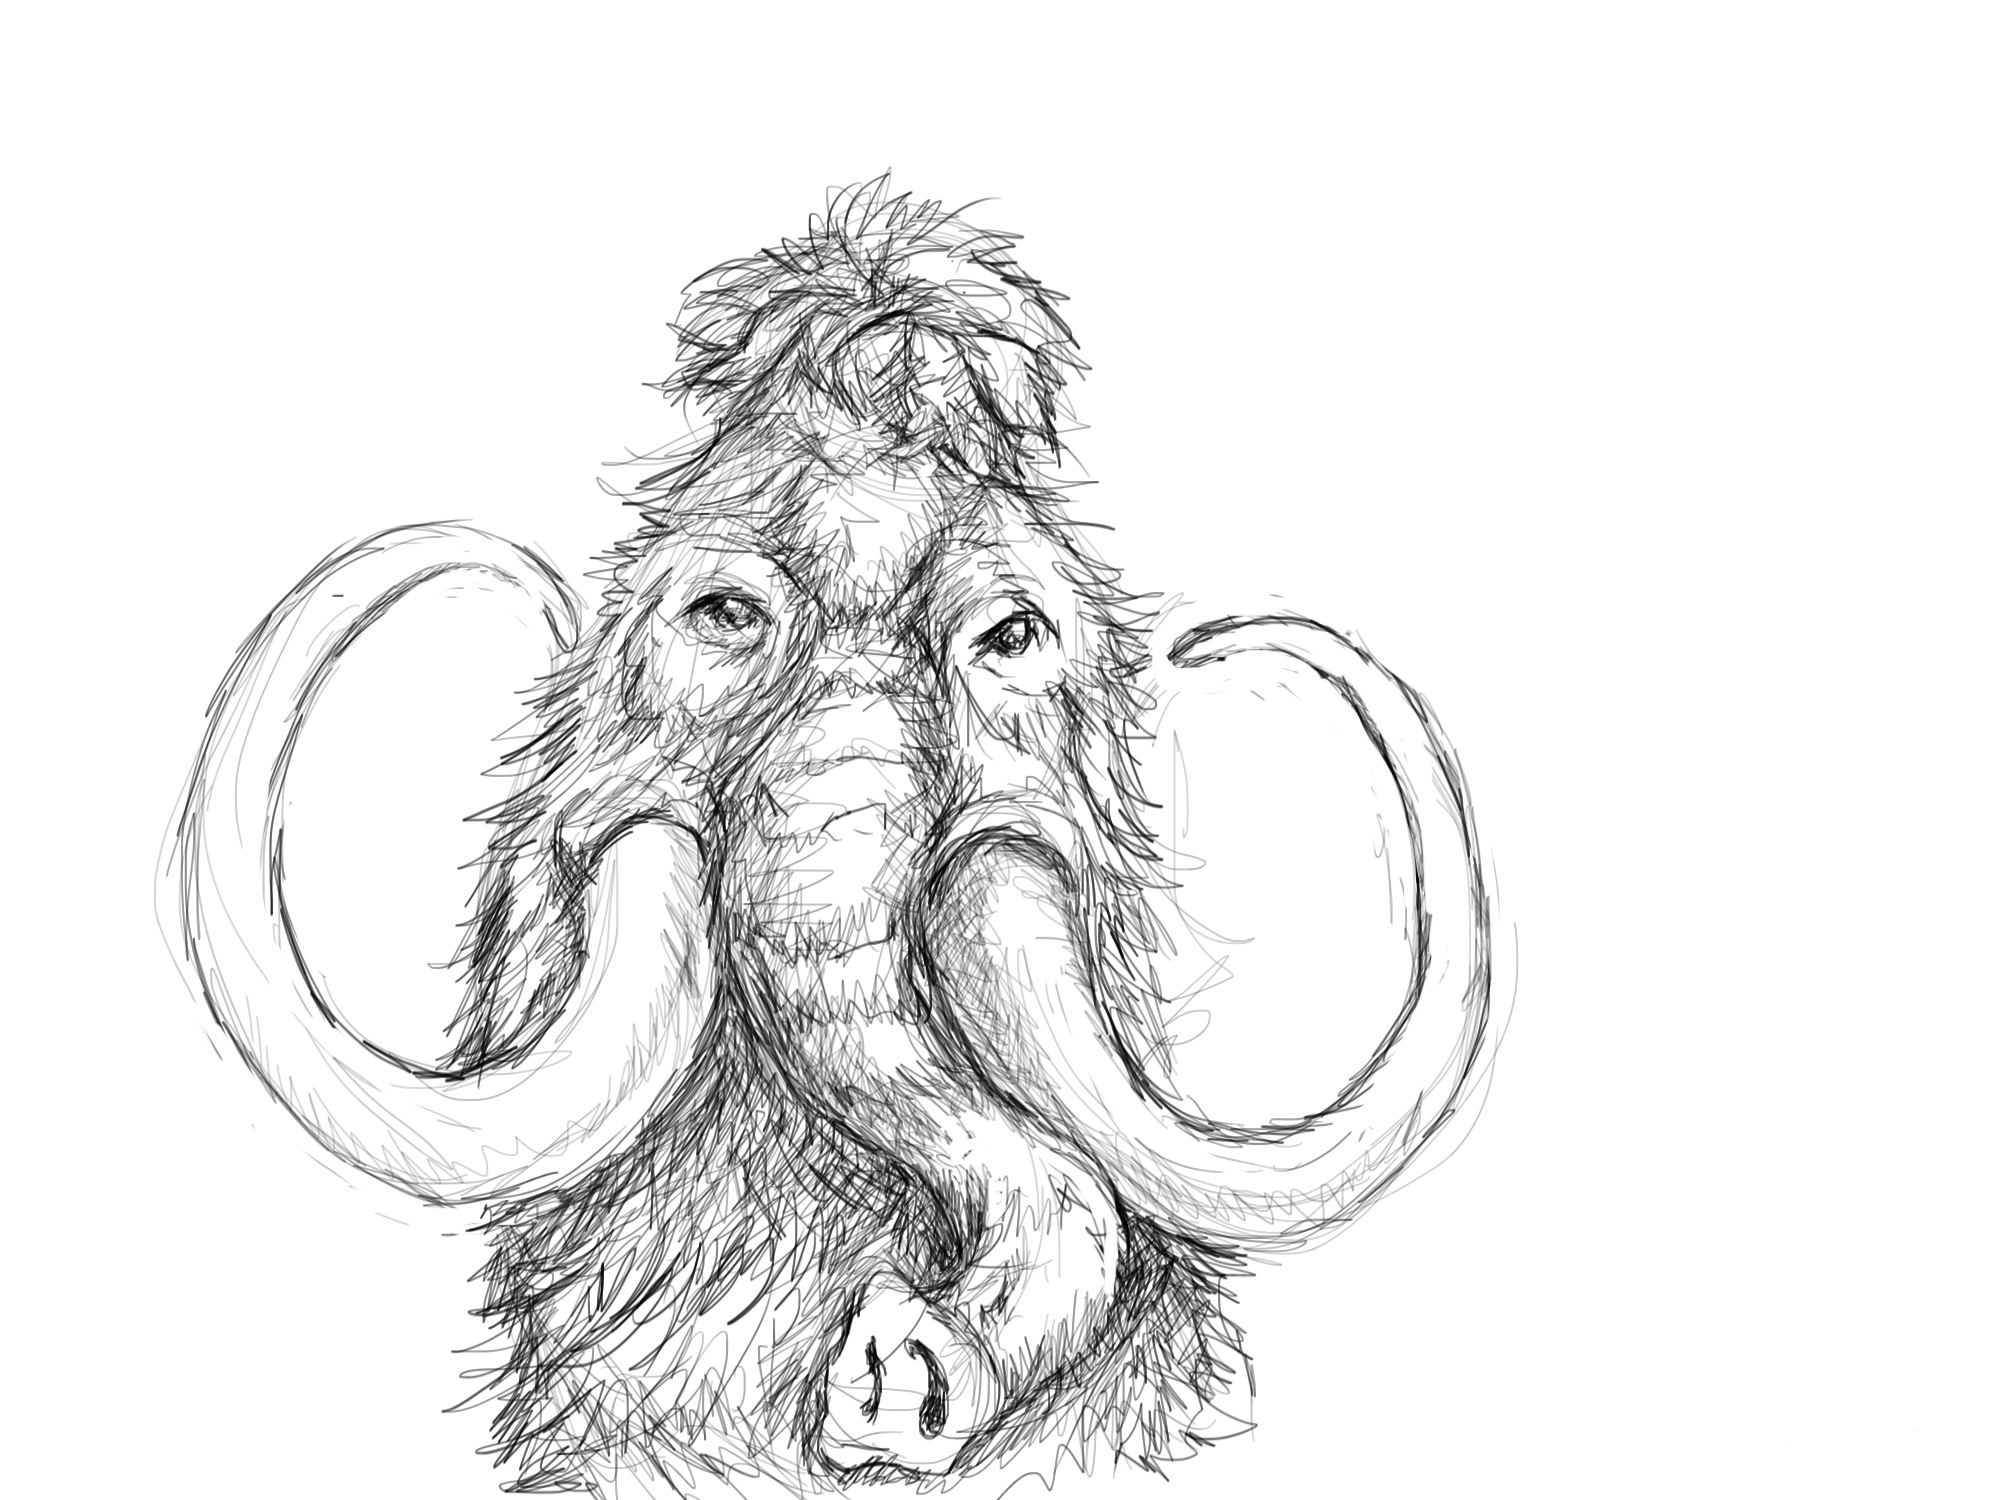 how to draw a woolly mammoth step by step how to draw a mammoth youtube woolly step draw how mammoth a by to step